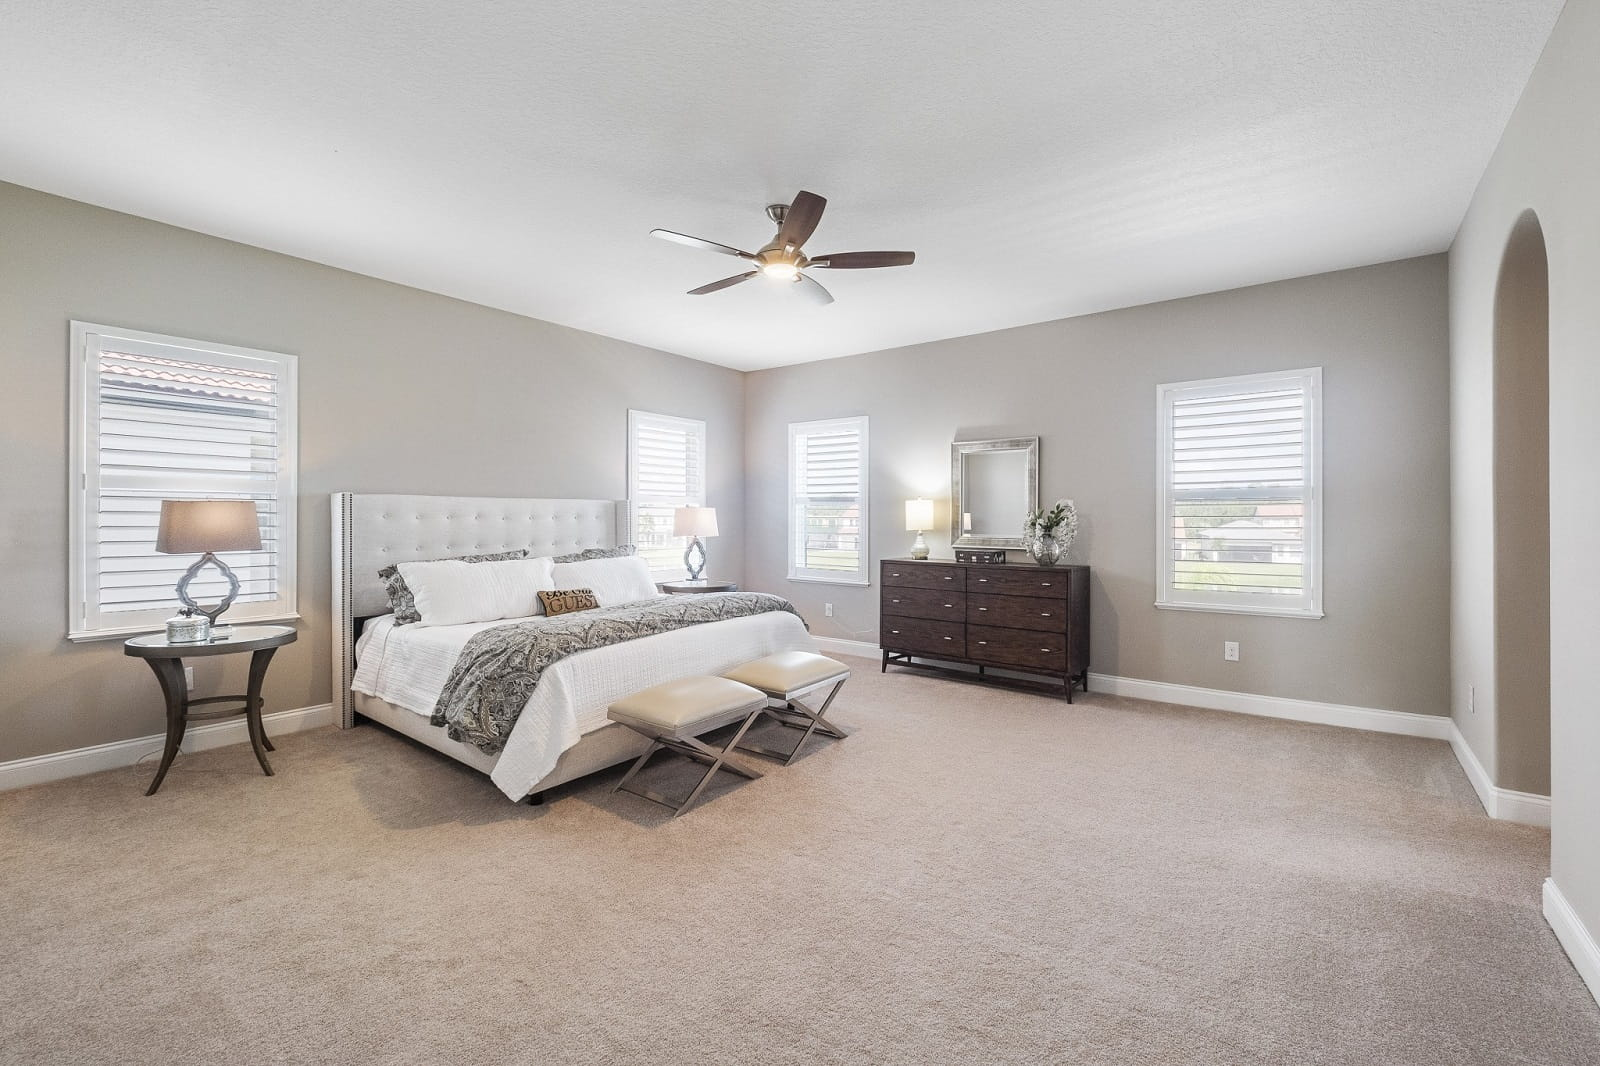 Real Estate Photography in Orlando - FL - USA - Bedroom View